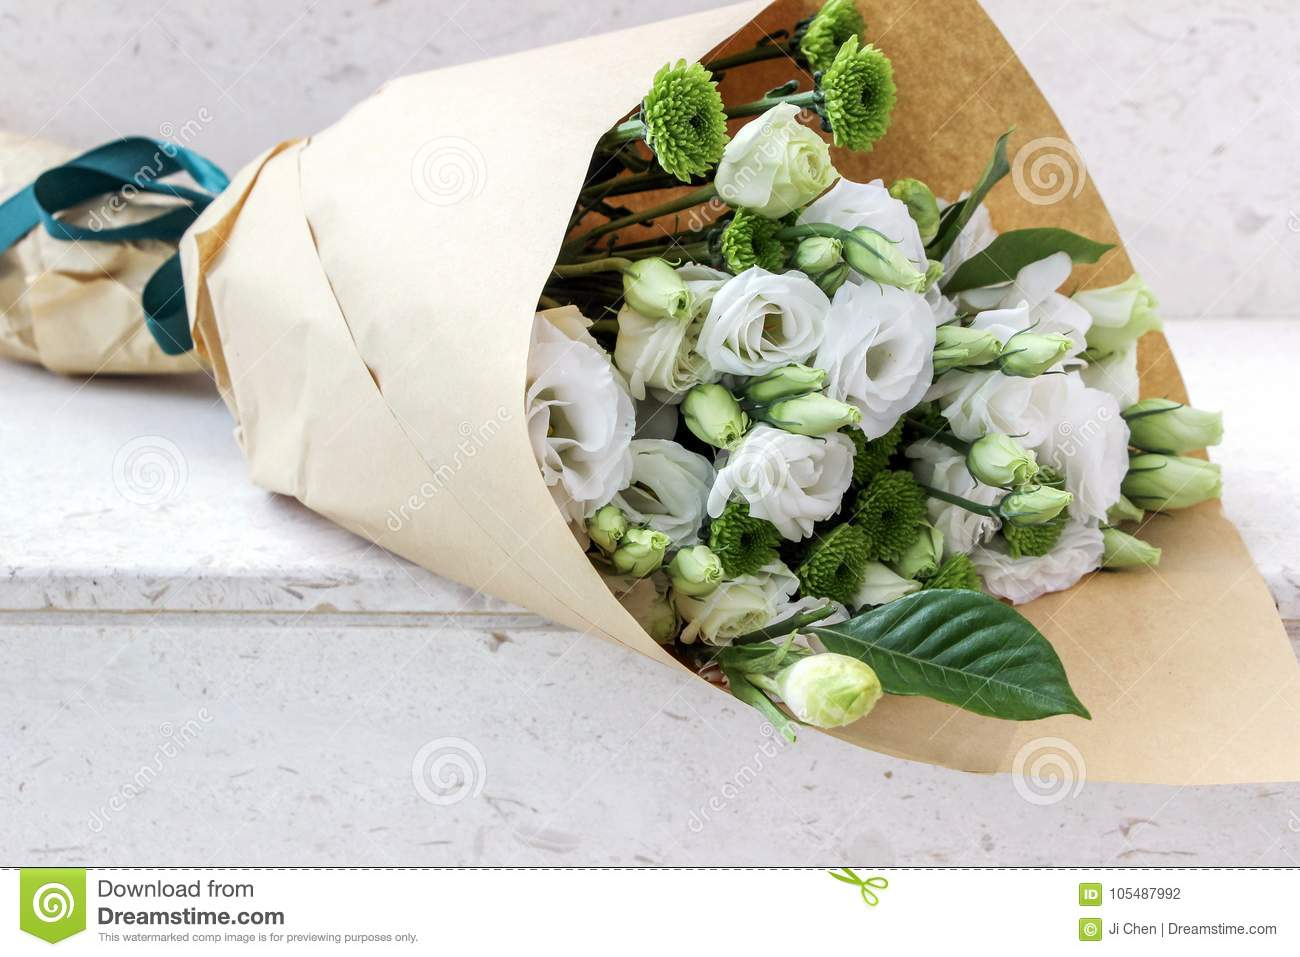 White flowers wrapped in paper stock photo image of closeup download white flowers wrapped in paper stock photo image of closeup flower 105487992 mightylinksfo